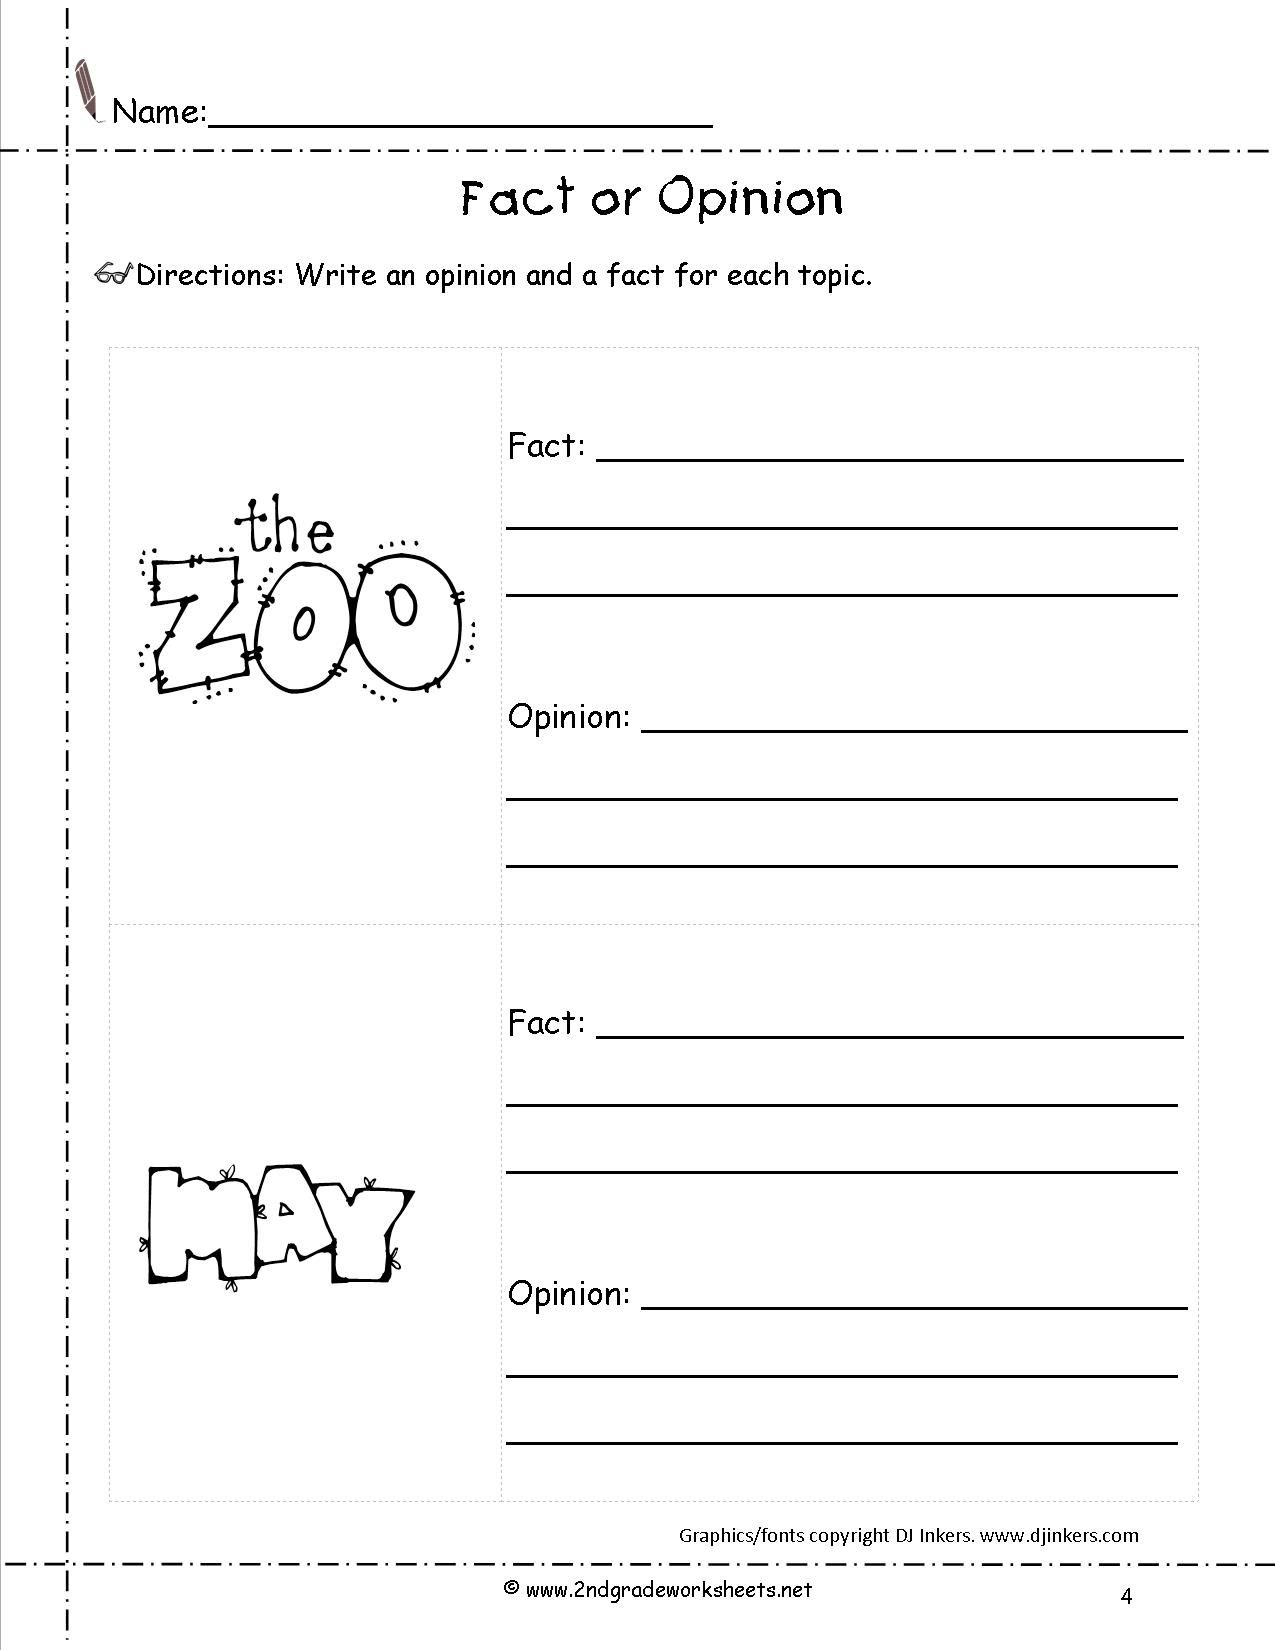 Opinion Writing Worksheets For 4Th Grade